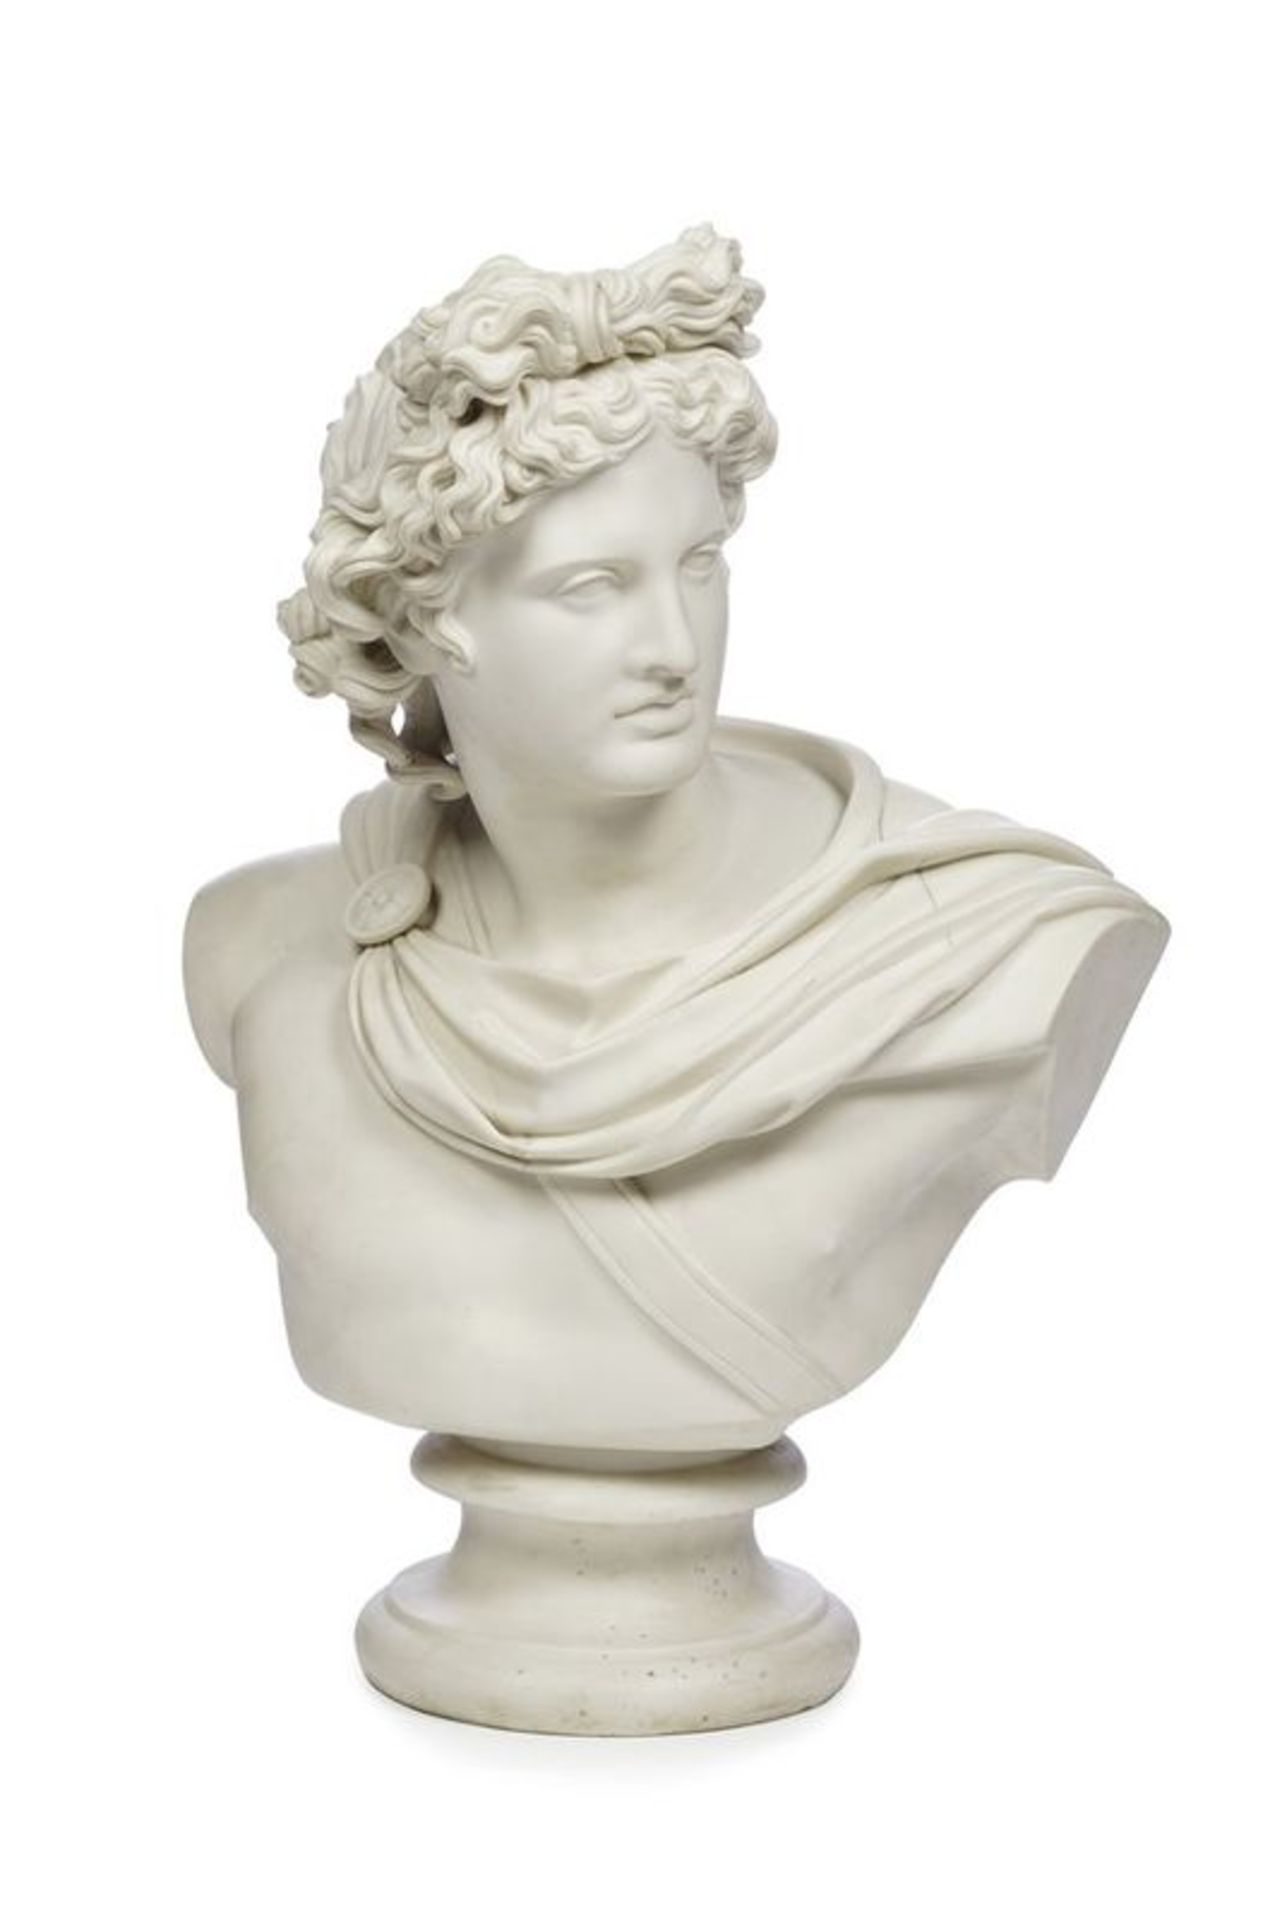 A PARIAN BUST OF APOLLO 19TH CENTURY - Modelled quarter-length, his head turned to [...]